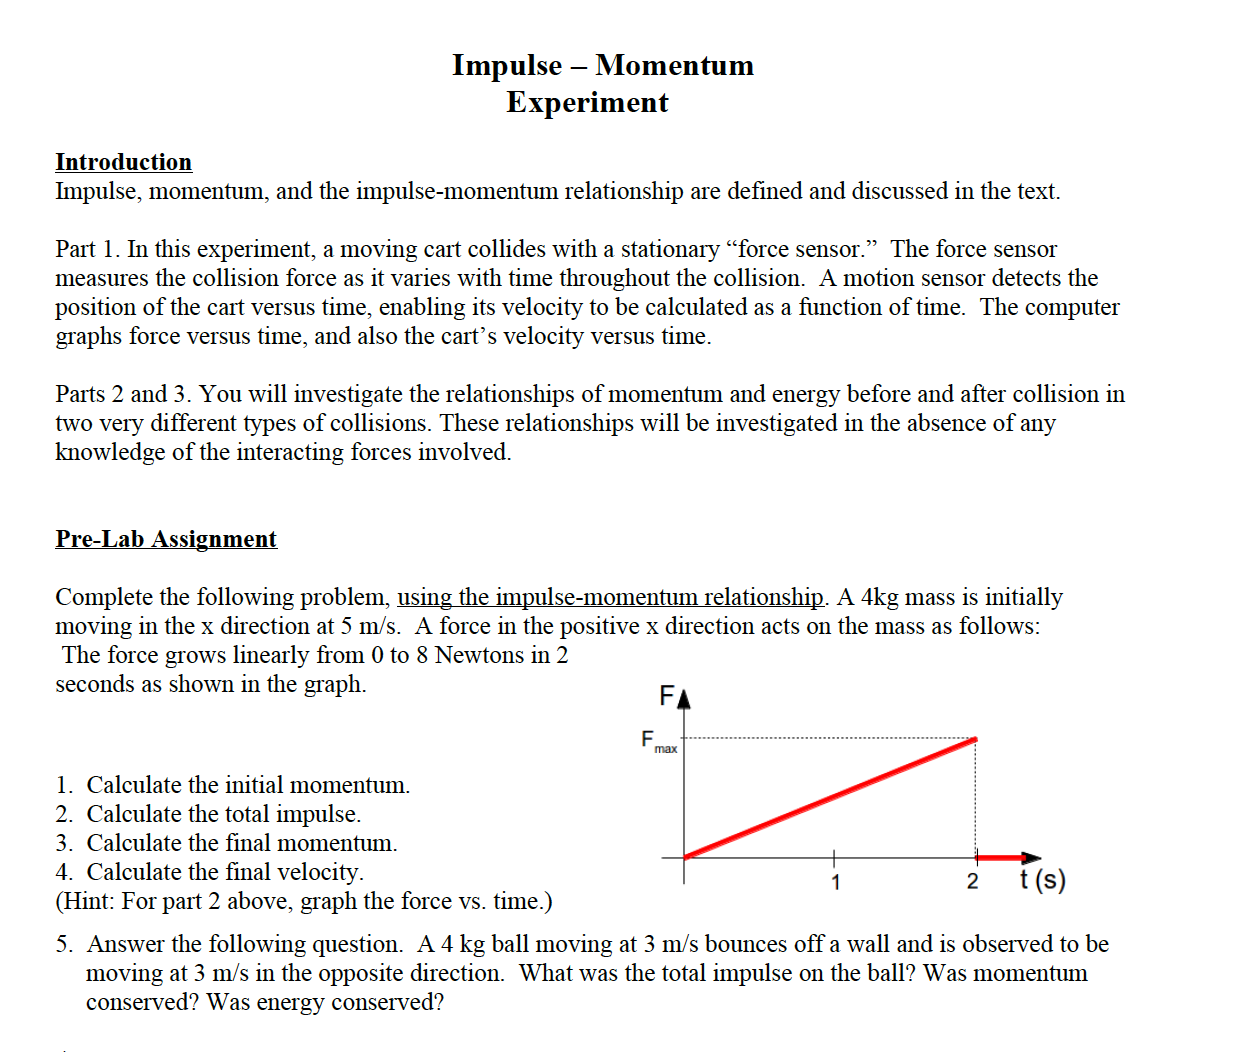 experiment 20 impulse and momentum relationship